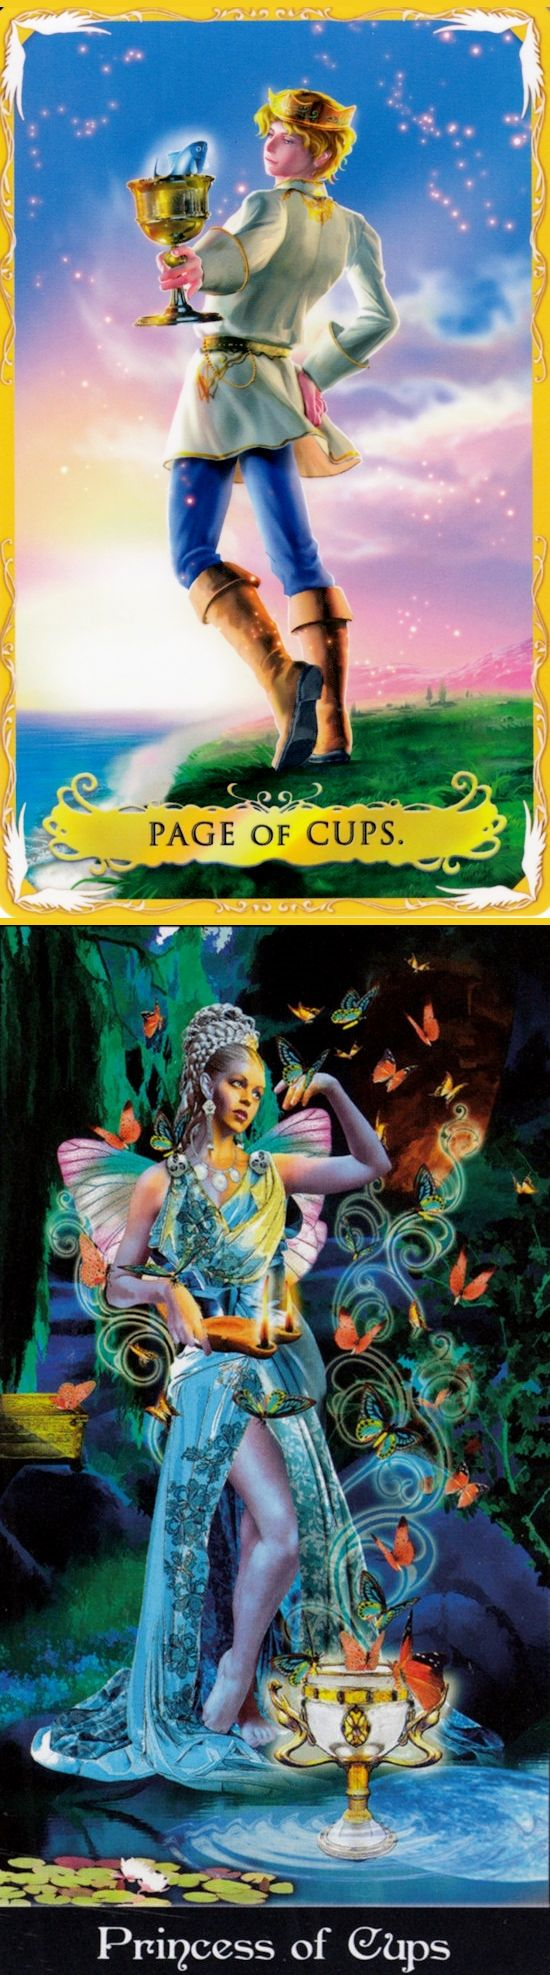 Page of Cups: intuition and leaving reality for fantasy (reverse). Alchemia Tarot deck and Apokalypsis Tarot deck: free tarot card reading for today, tarot78 doors vs horoscope tarot cards. New halloween decorations and wicca. #pentagram #pods #iosgame #android #highpriestess #iosapp